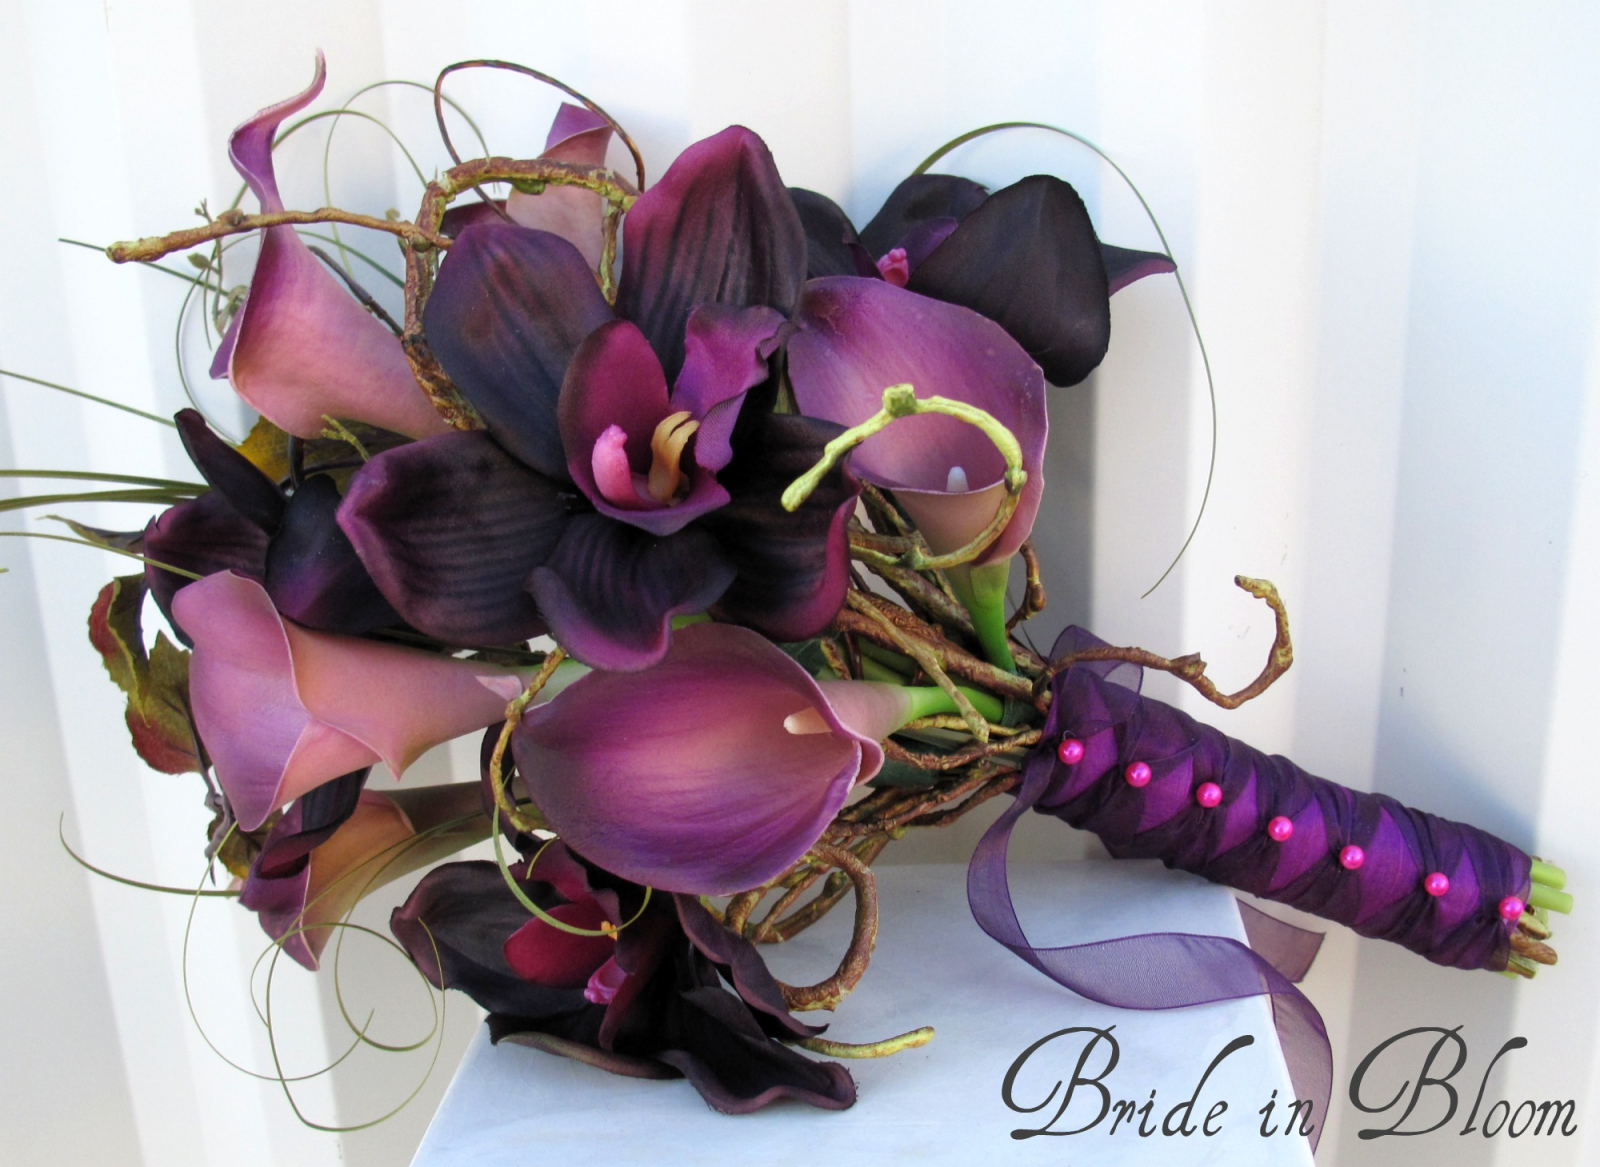 Plum orchid calla lily wedding bouquet | Bride in Bloom